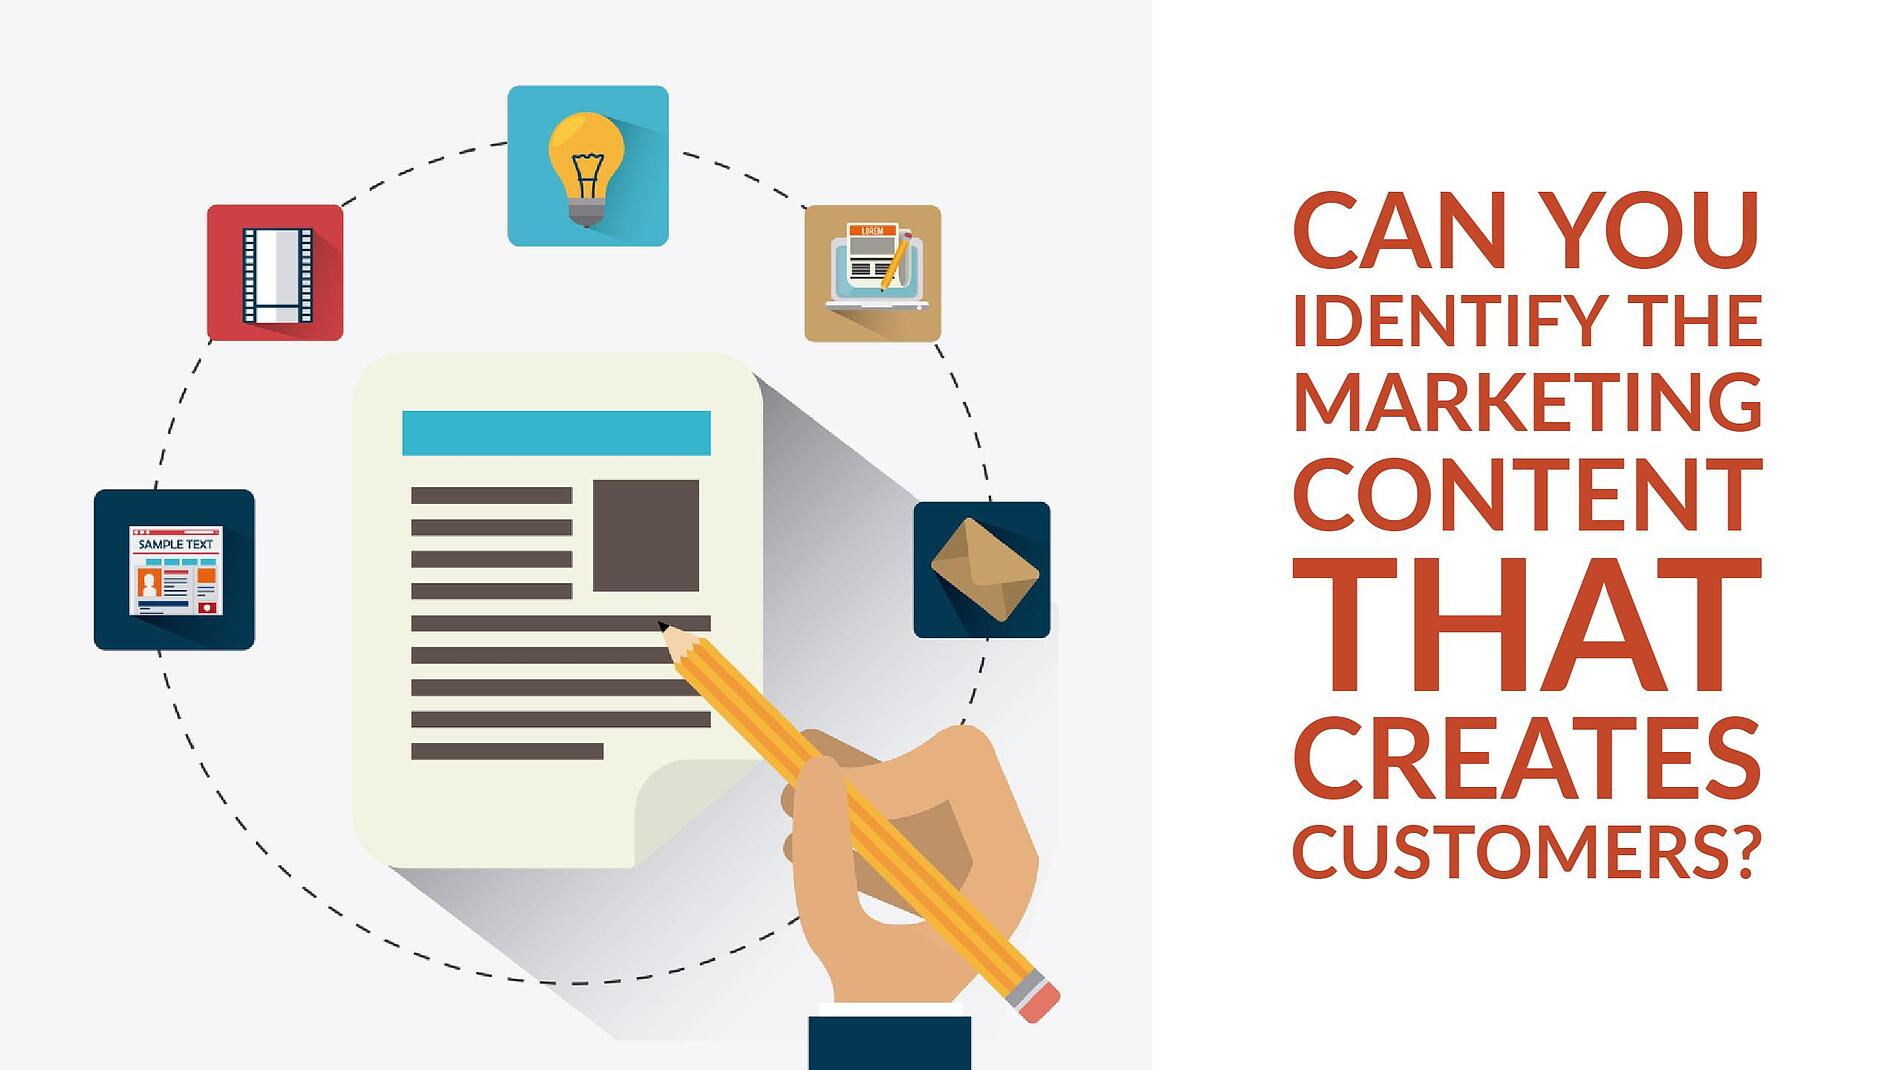 Identify the Marketing Content That Creates Customers